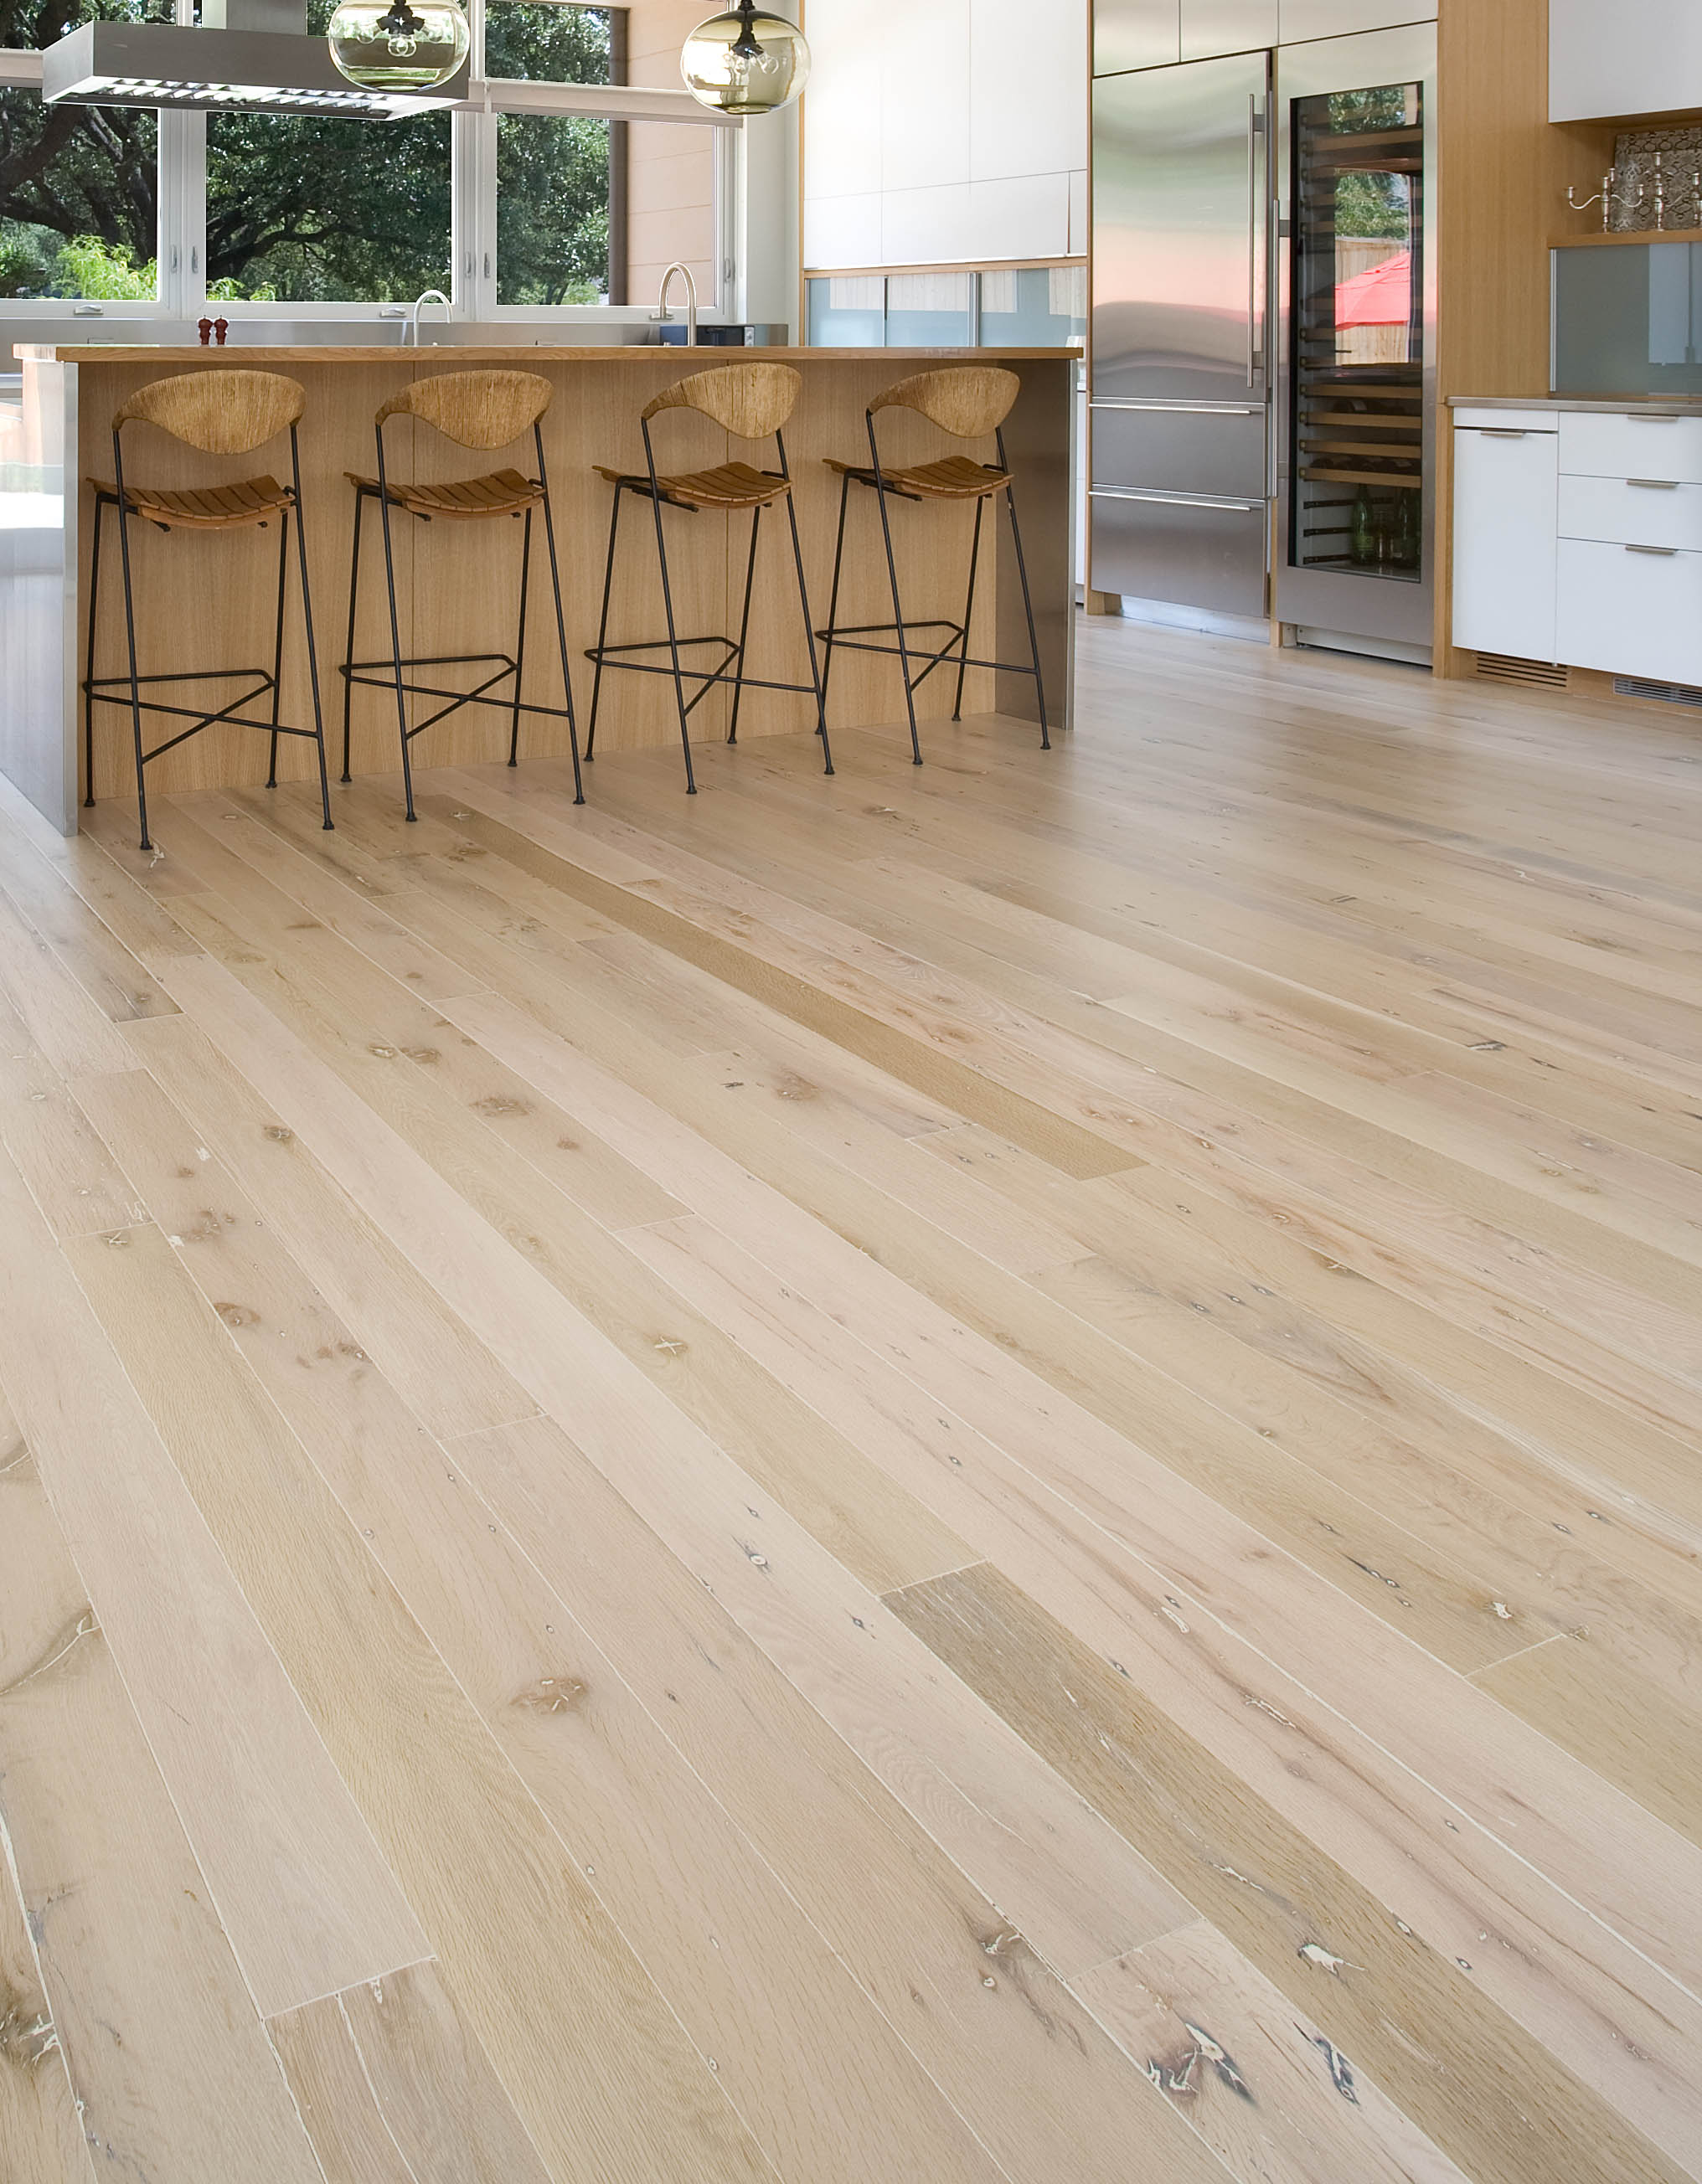 white-oak-wood-flooring-from-recalmed-timber-o